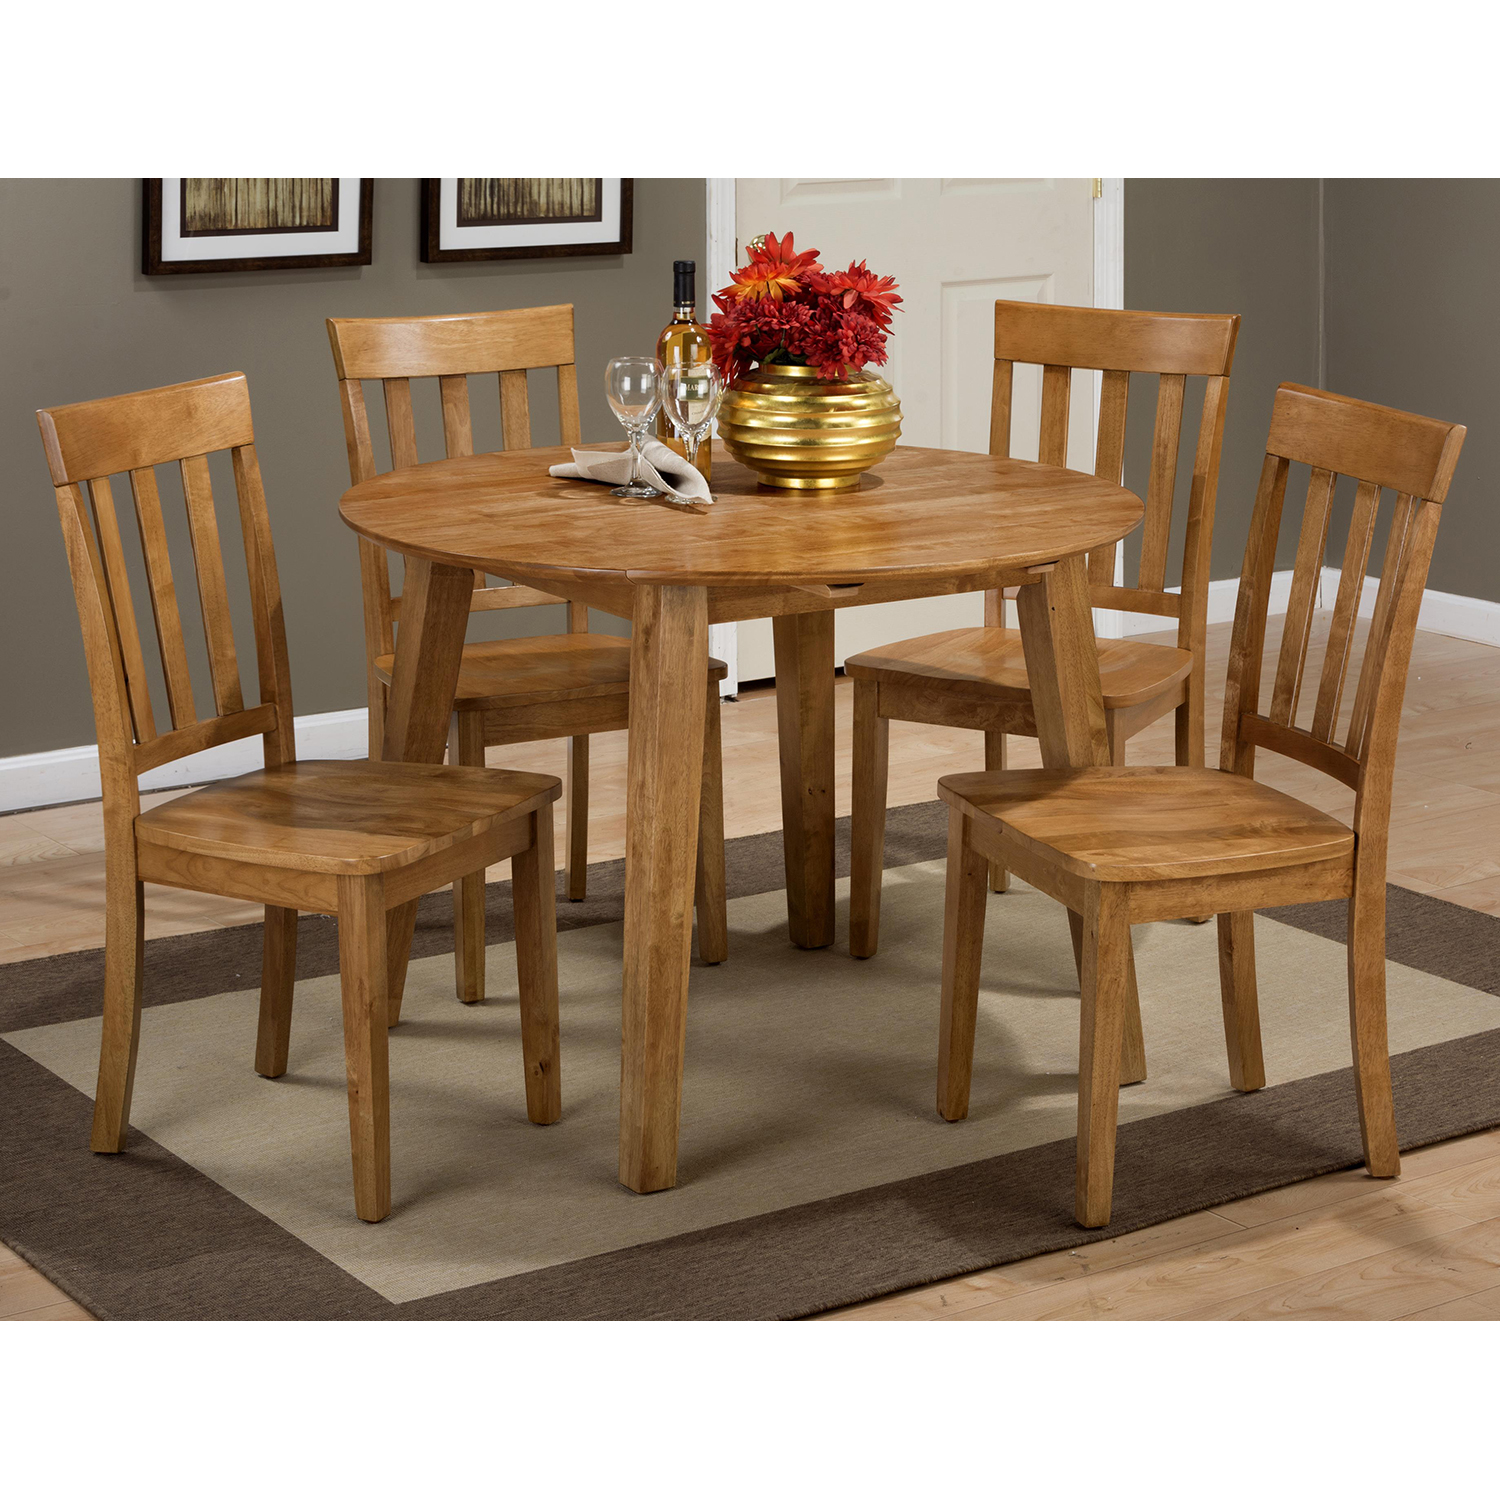 Simplicity 5 Pieces Dining Set - Round Table, Slat Back Chair, Honey - JOFR-352-28-319KD-SET